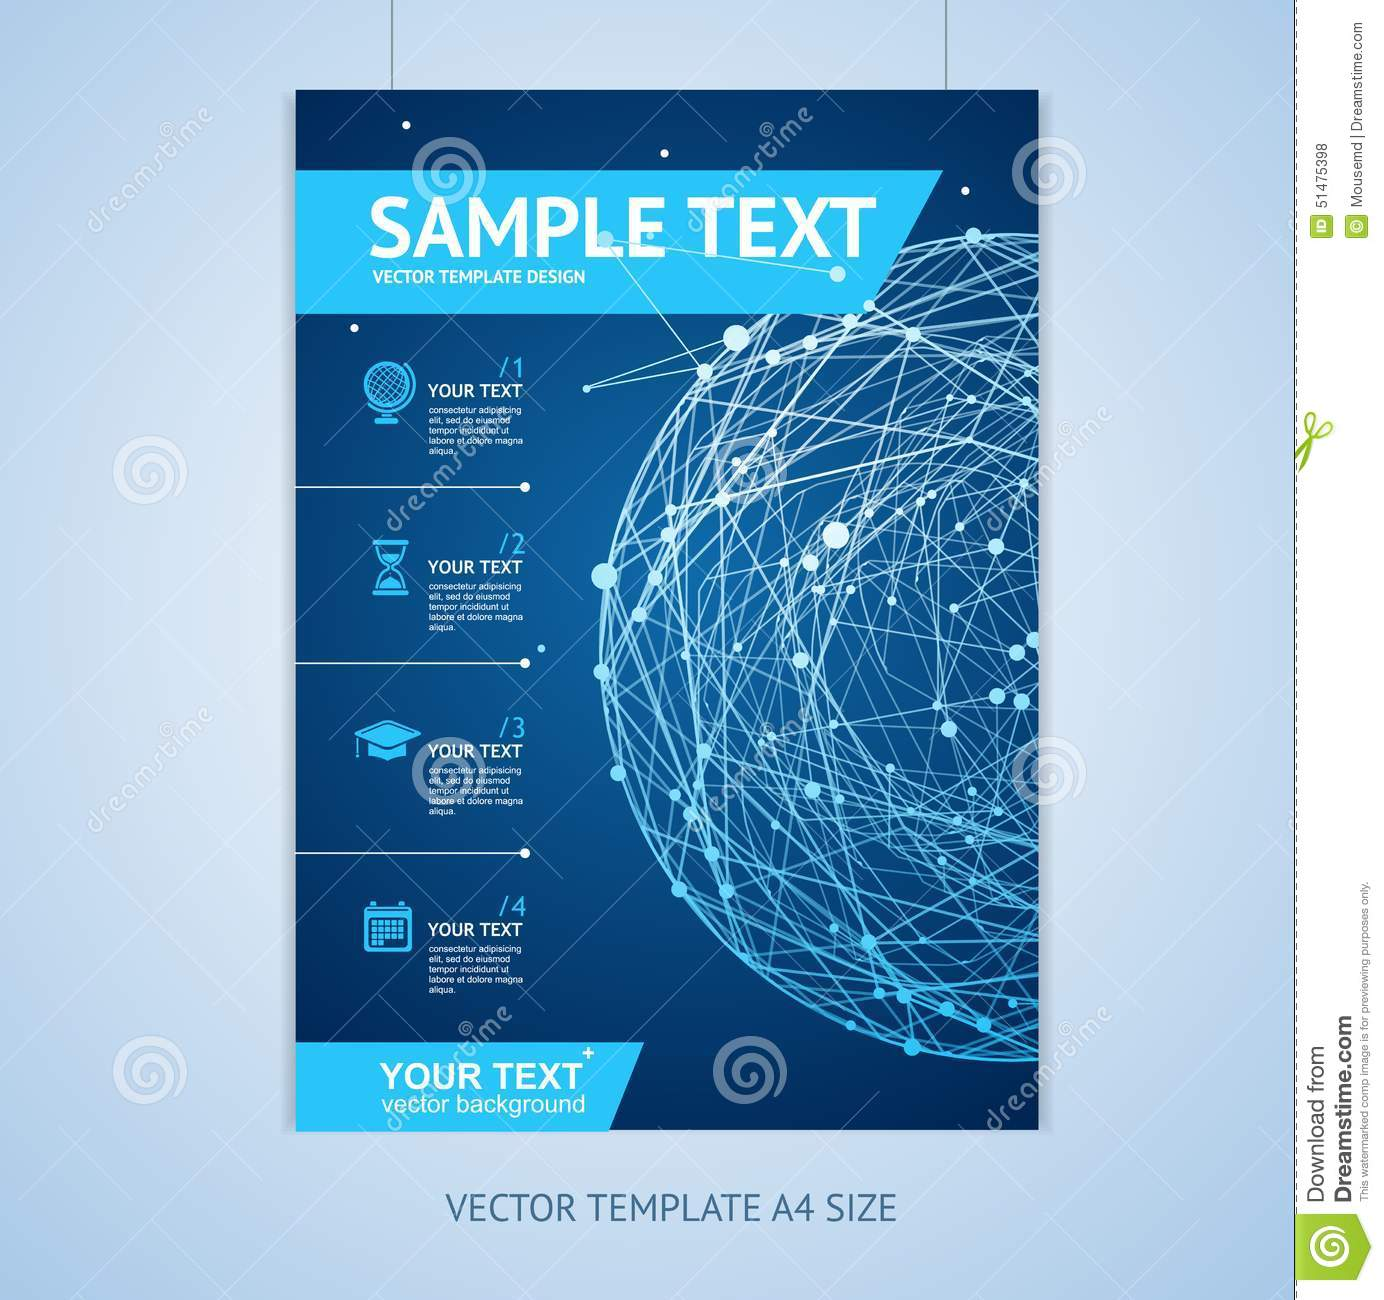 electronic brochure templates - vector abstract sphere brochure design templates stock